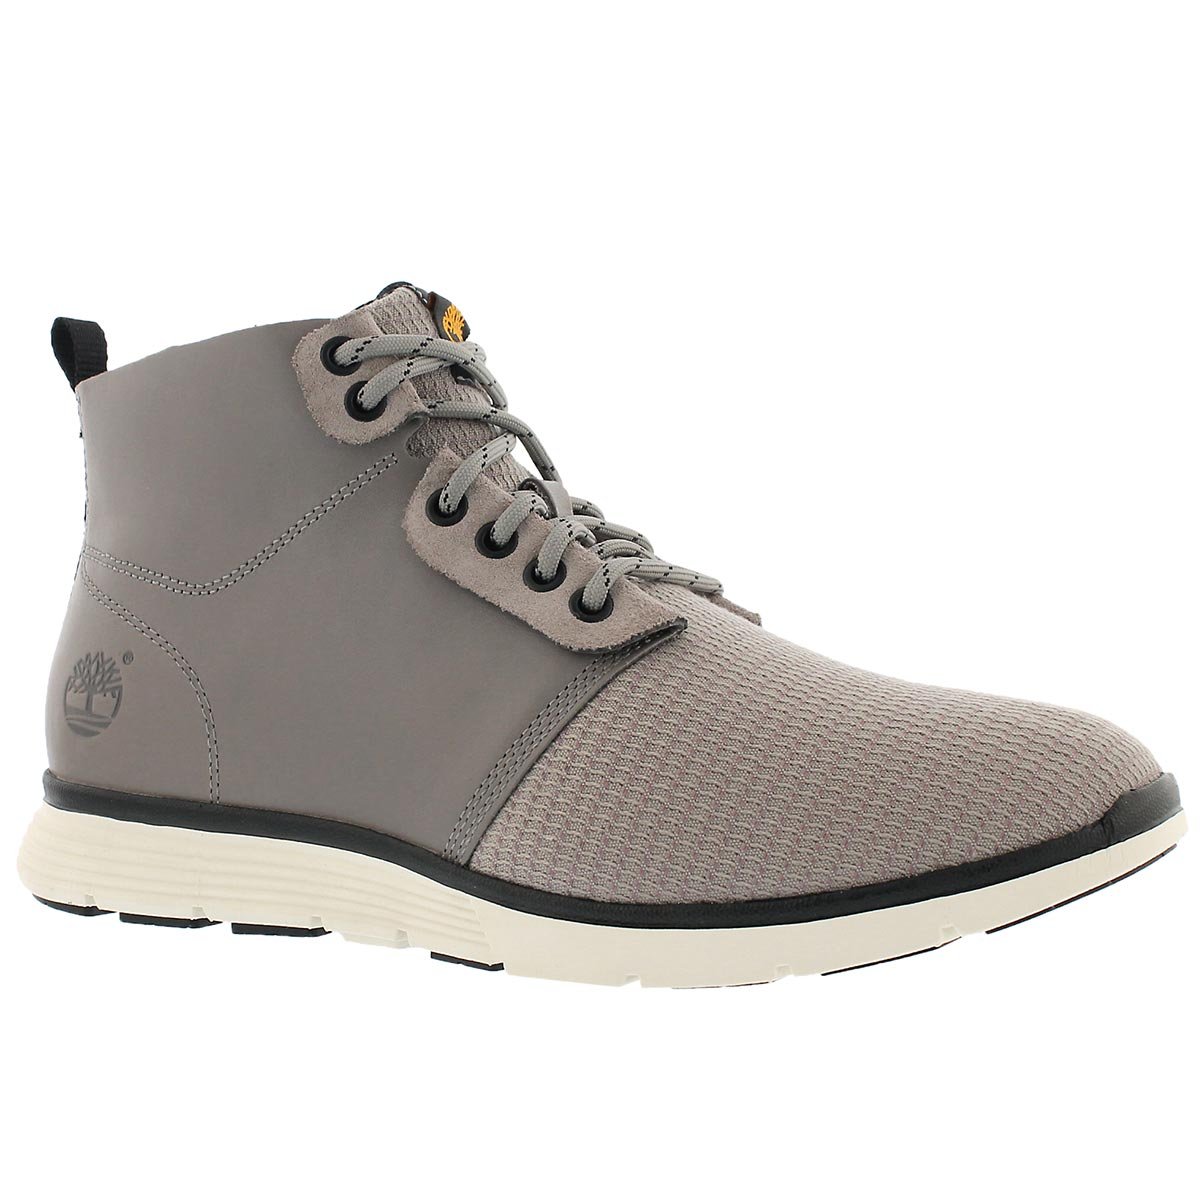 Men's KILLINGTON grey chukka boot